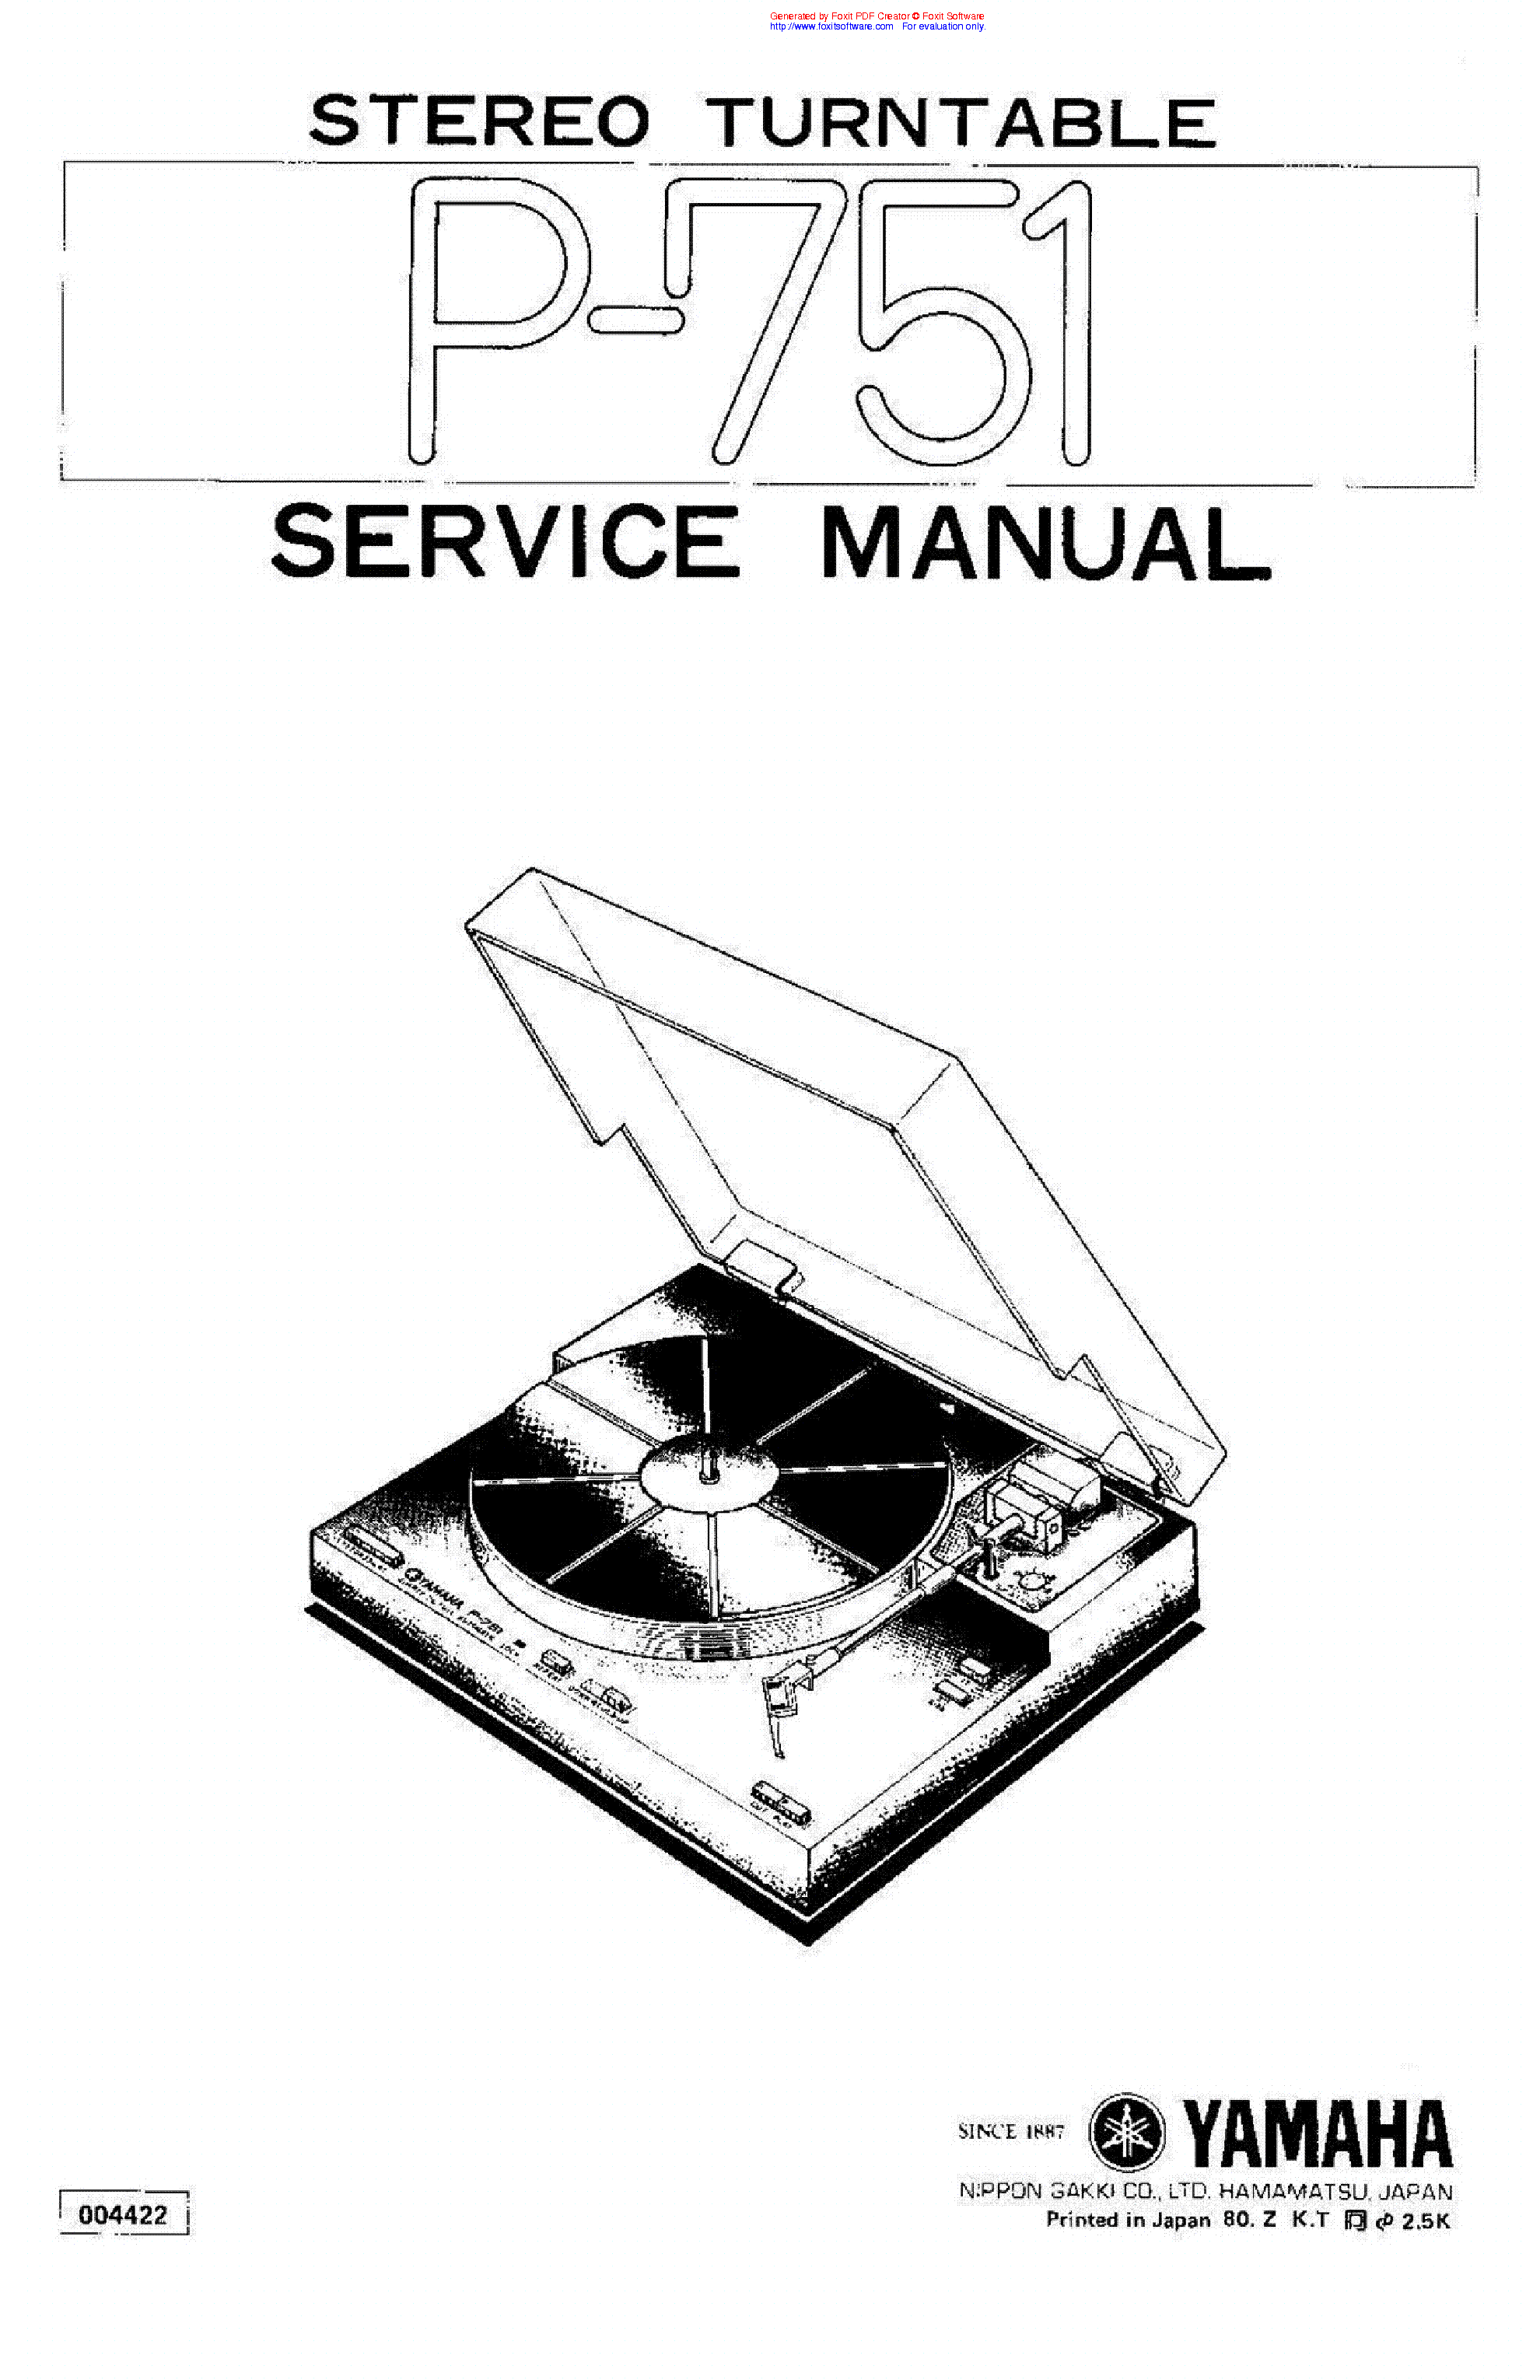 YAMAHA PM-700 AUDIO MIXER SCH Service Manual download